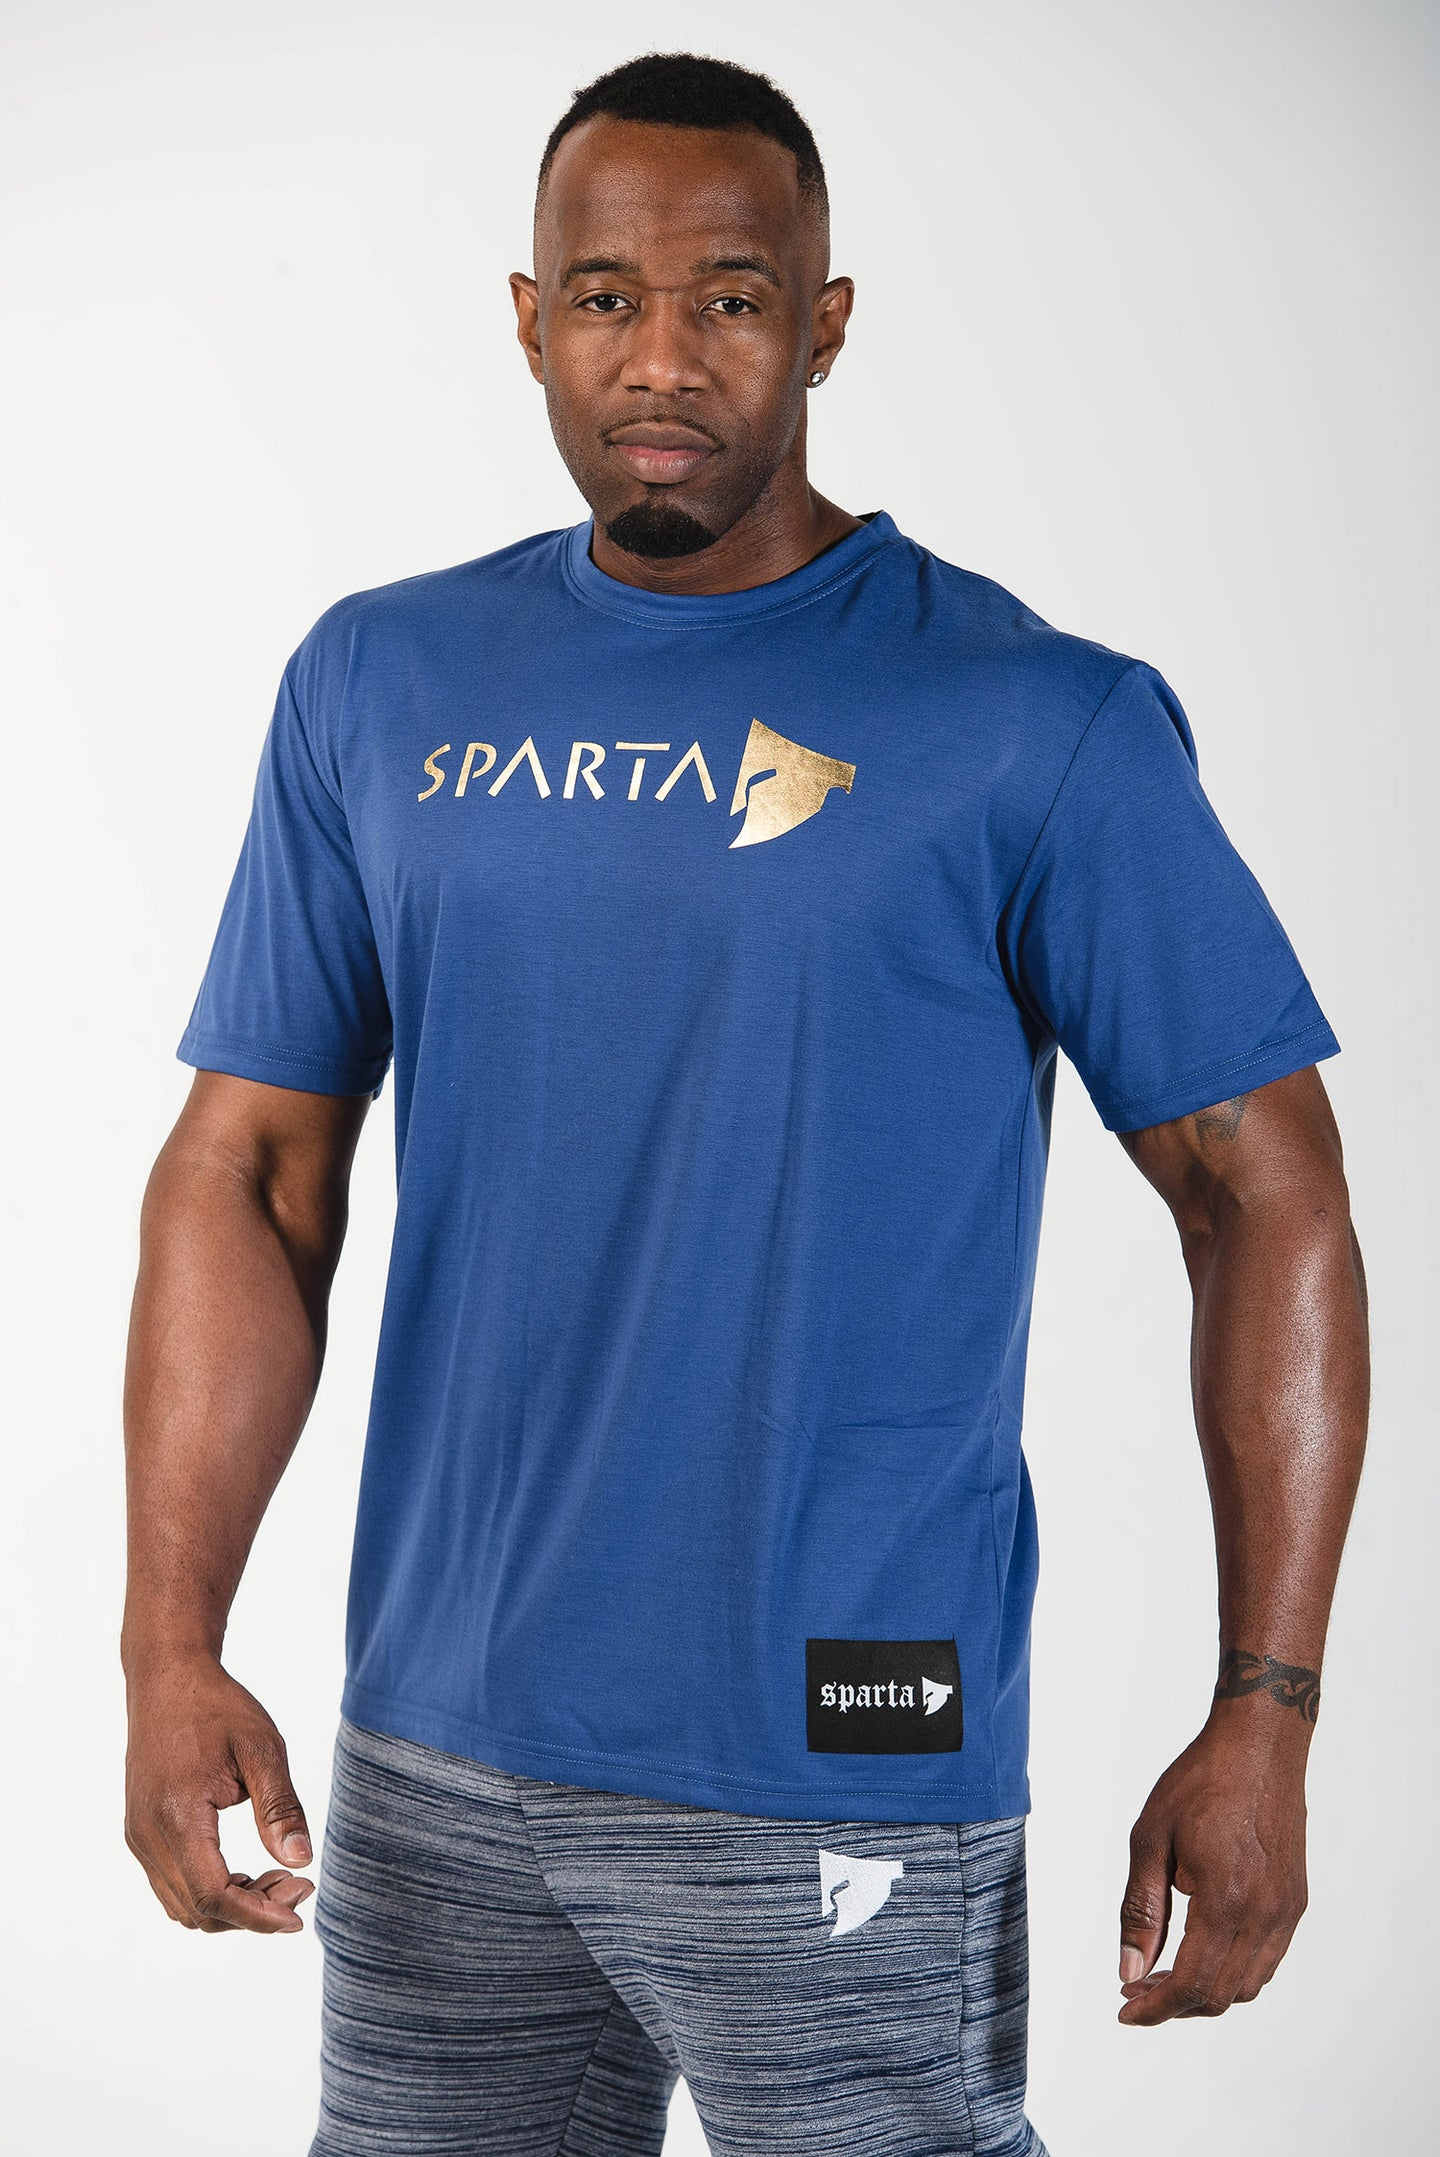 Sparta Signature Tee - Blue - Sparta Gym Wear